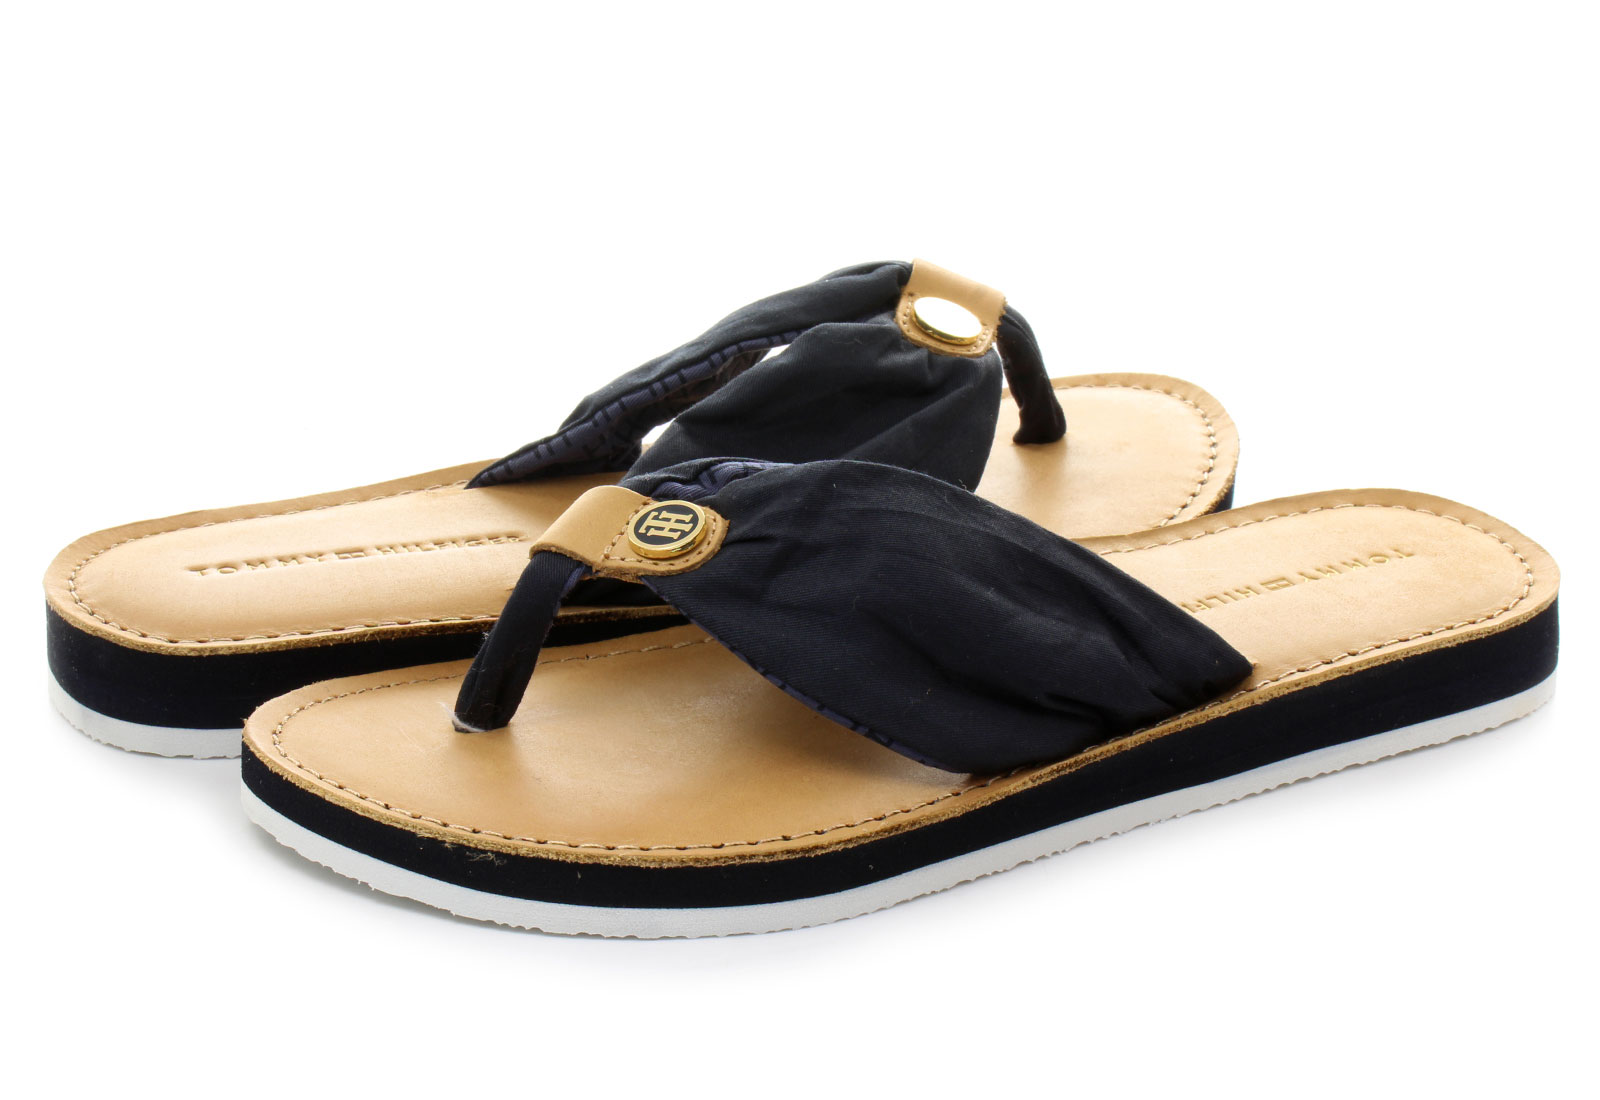 tommy hilfiger slippers monica 14d 16s 0724 403 online shop for sneakers  shoes and boots b802f73c9c